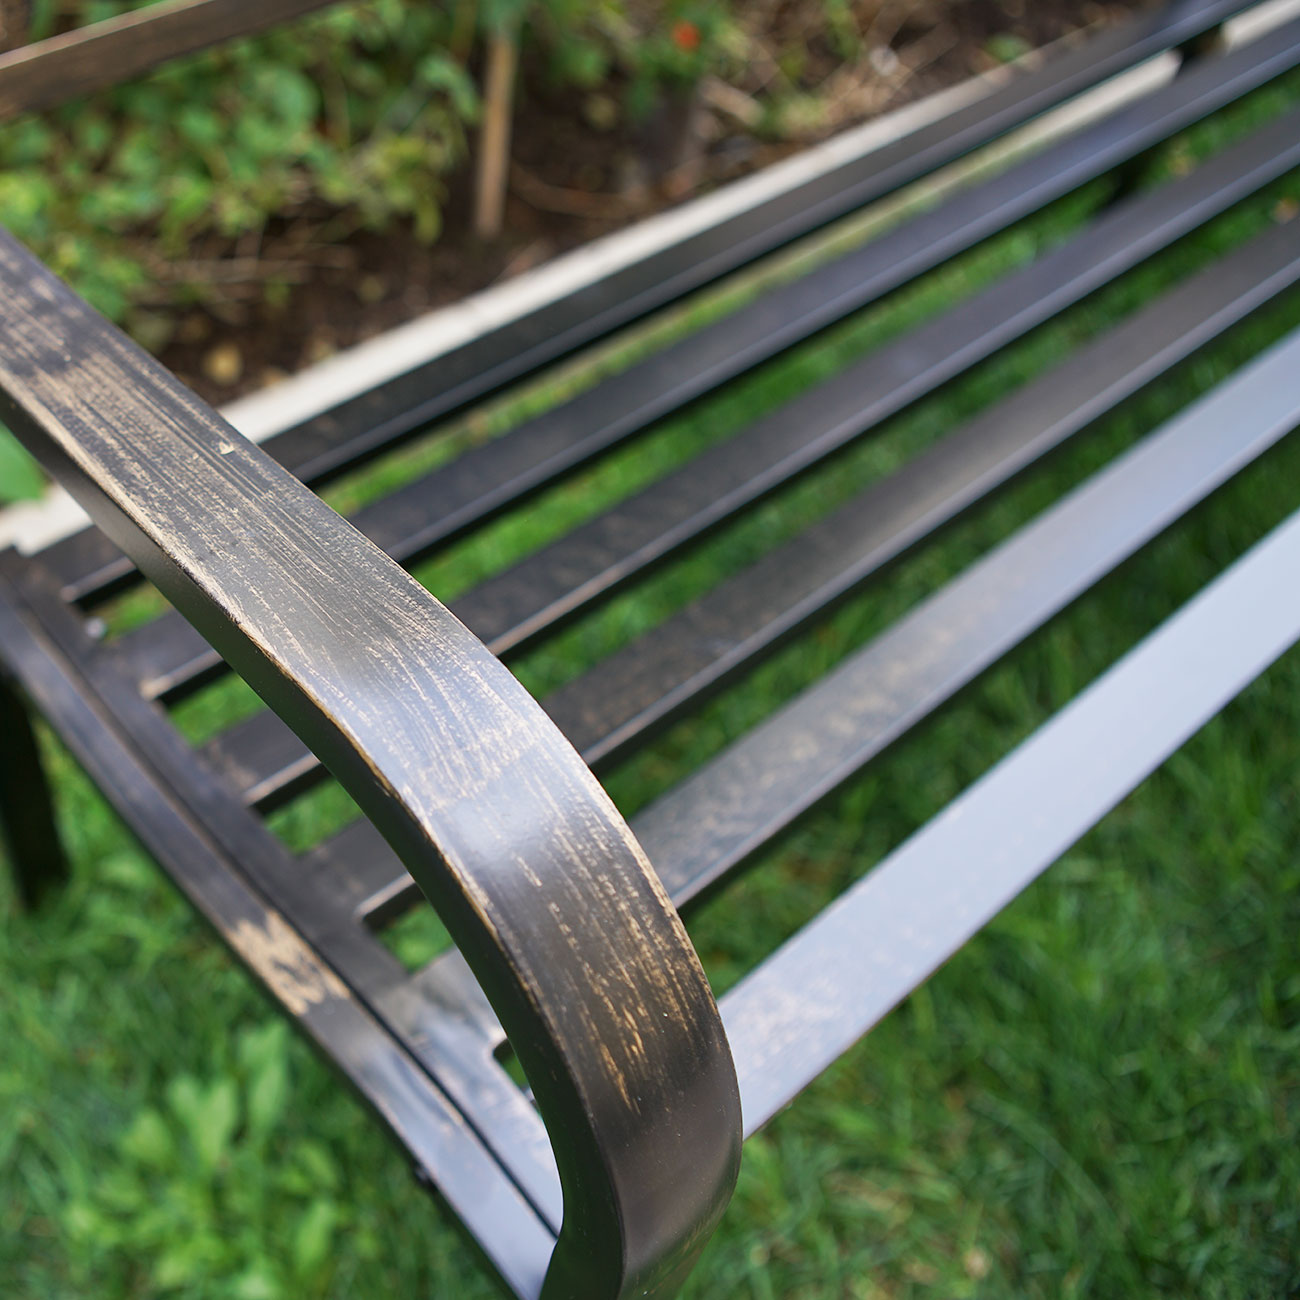 New Outdoor Garden Bench Patio Furniture Deck Backyard Welcome Love Seat Bronze Ebay